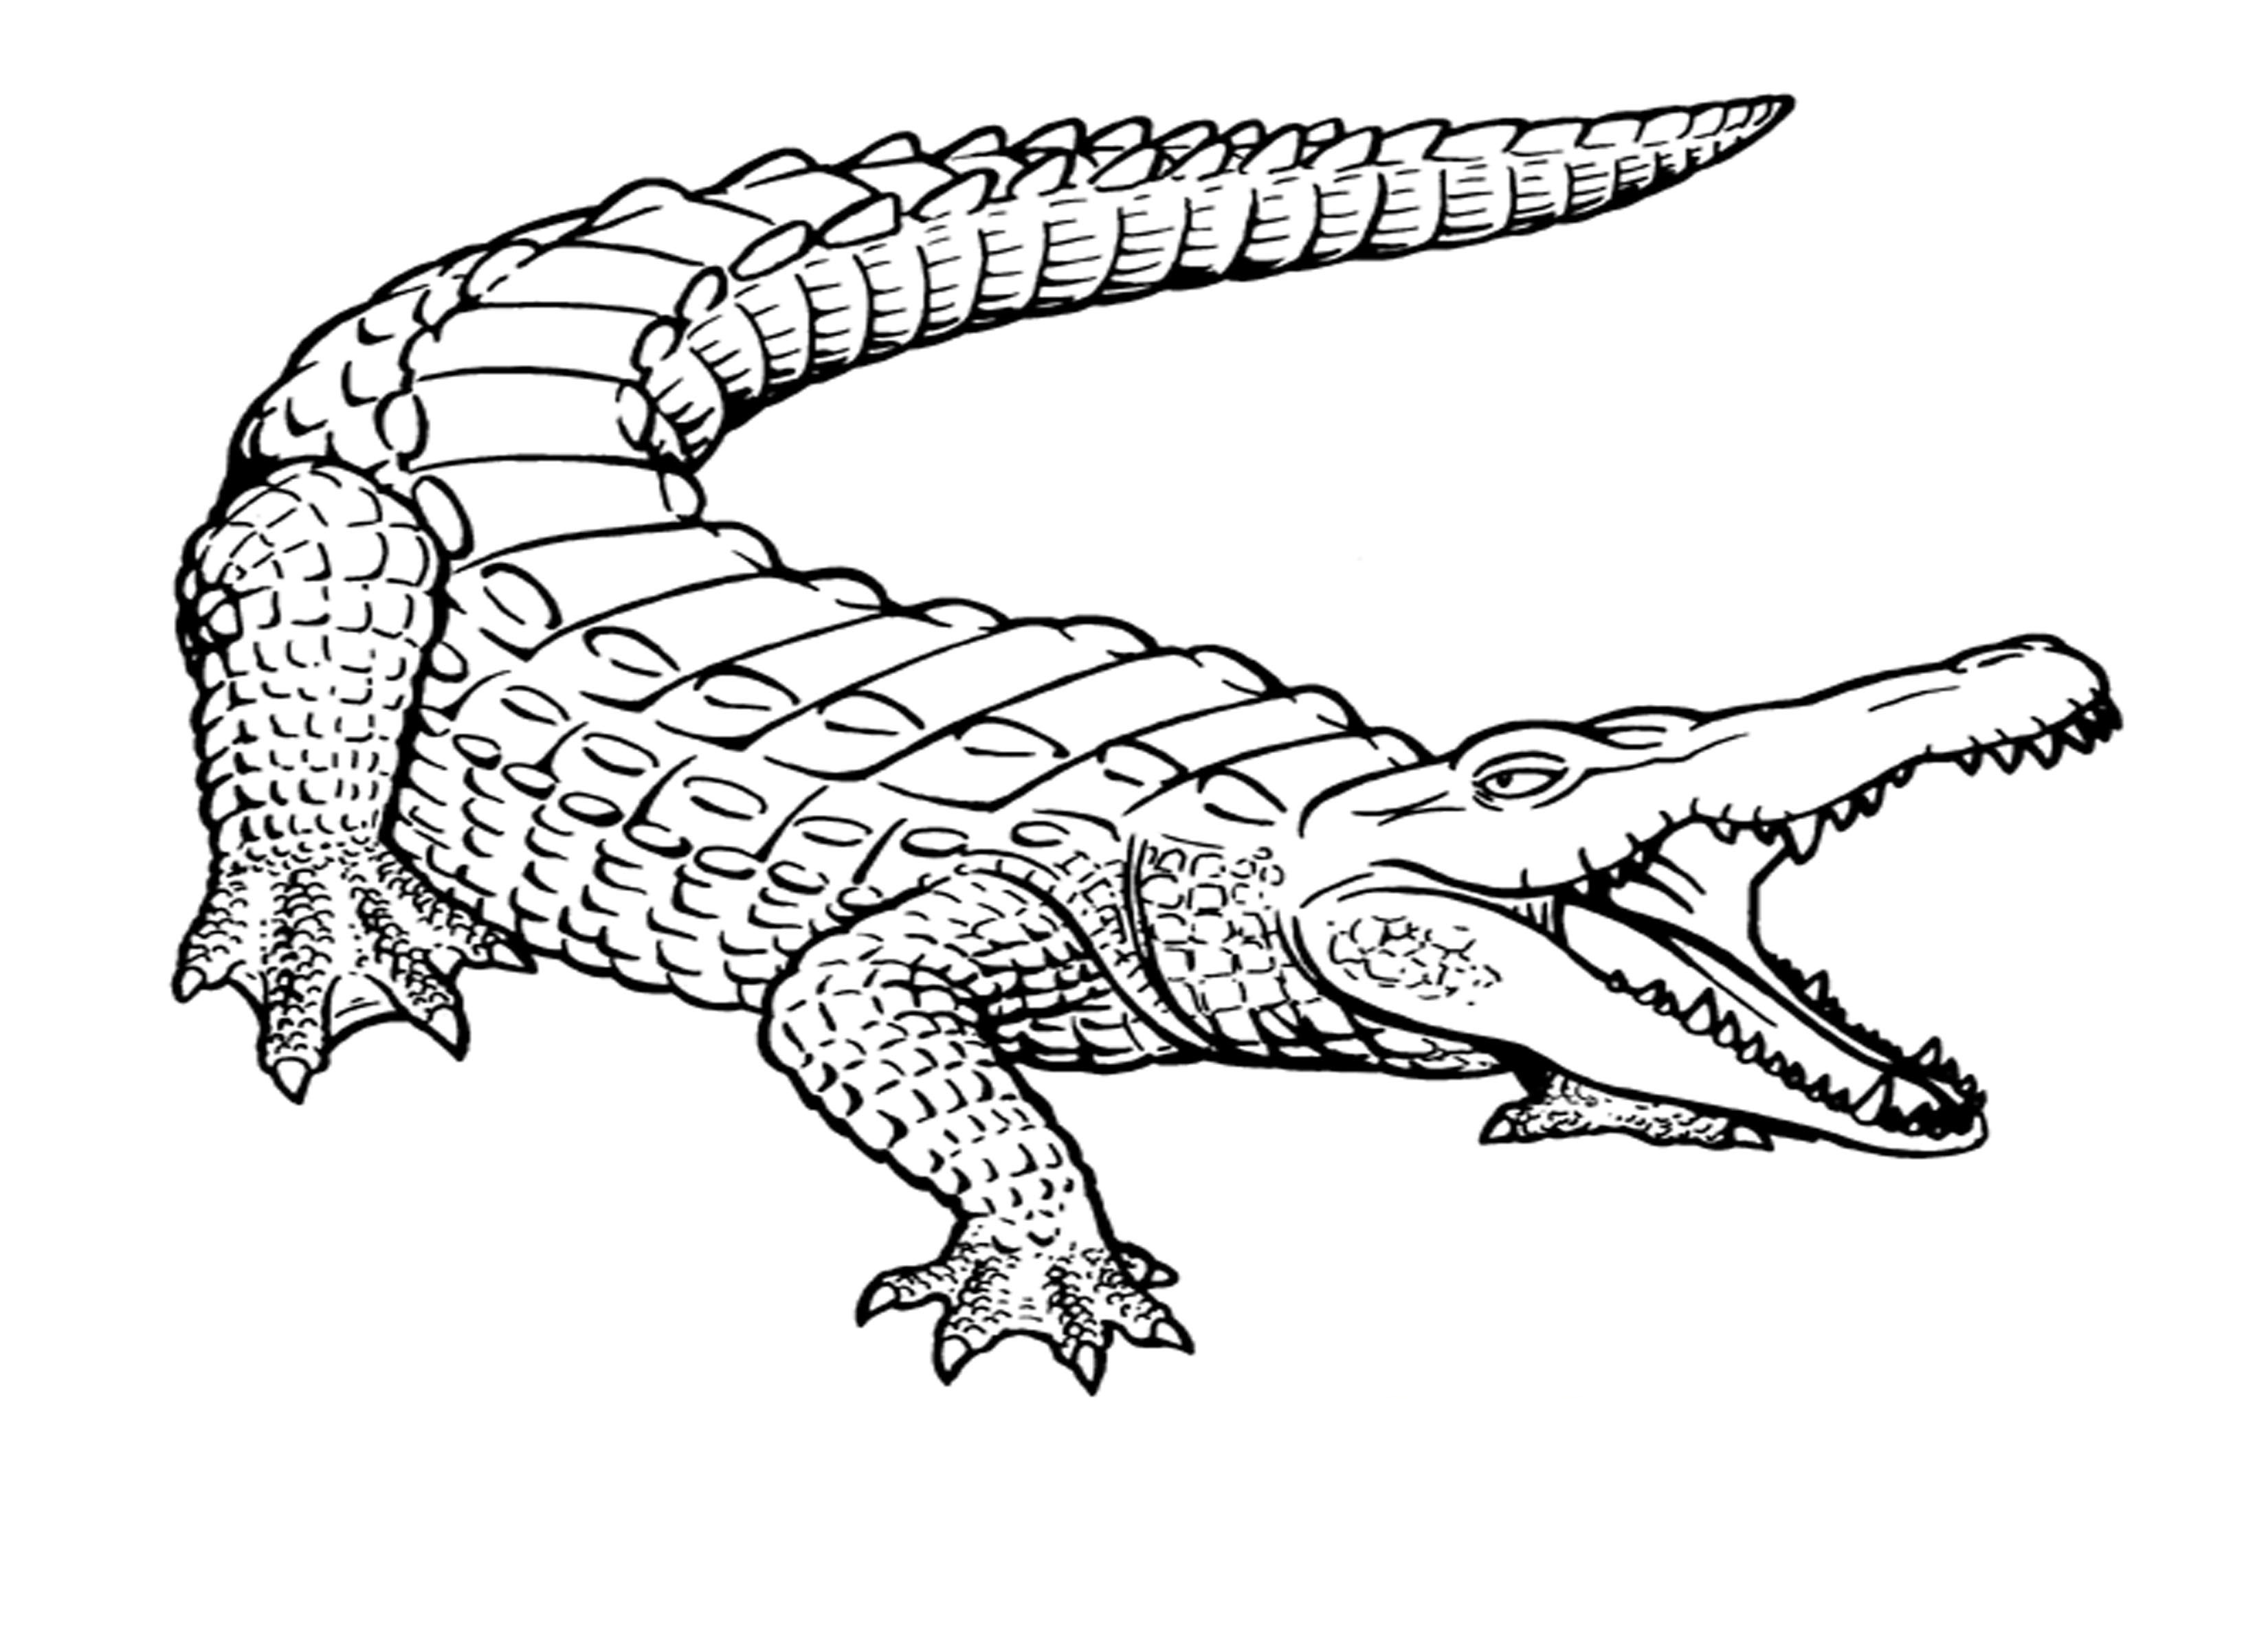 crocodile coloring pages kids - Colouring In Pages For Kids